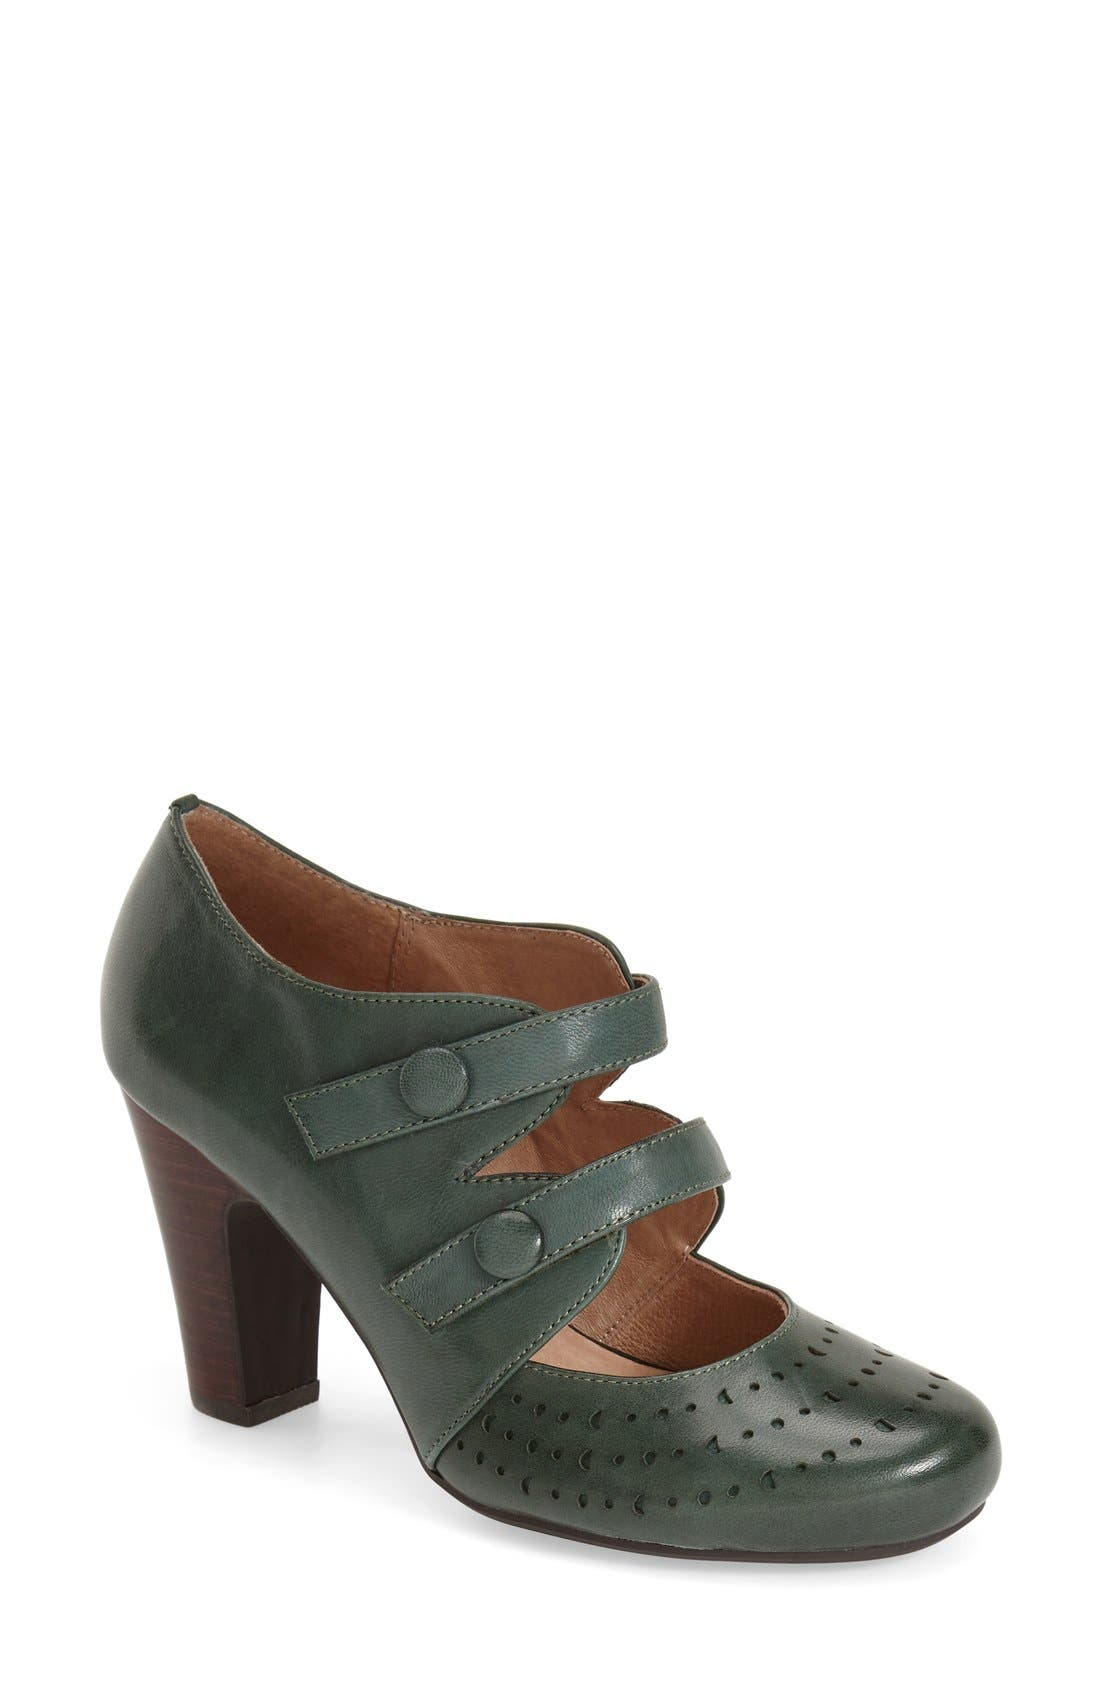 Alternate Image 1 Selected - Miz Mooz 'Judy' Mary Jane Pump (Women)